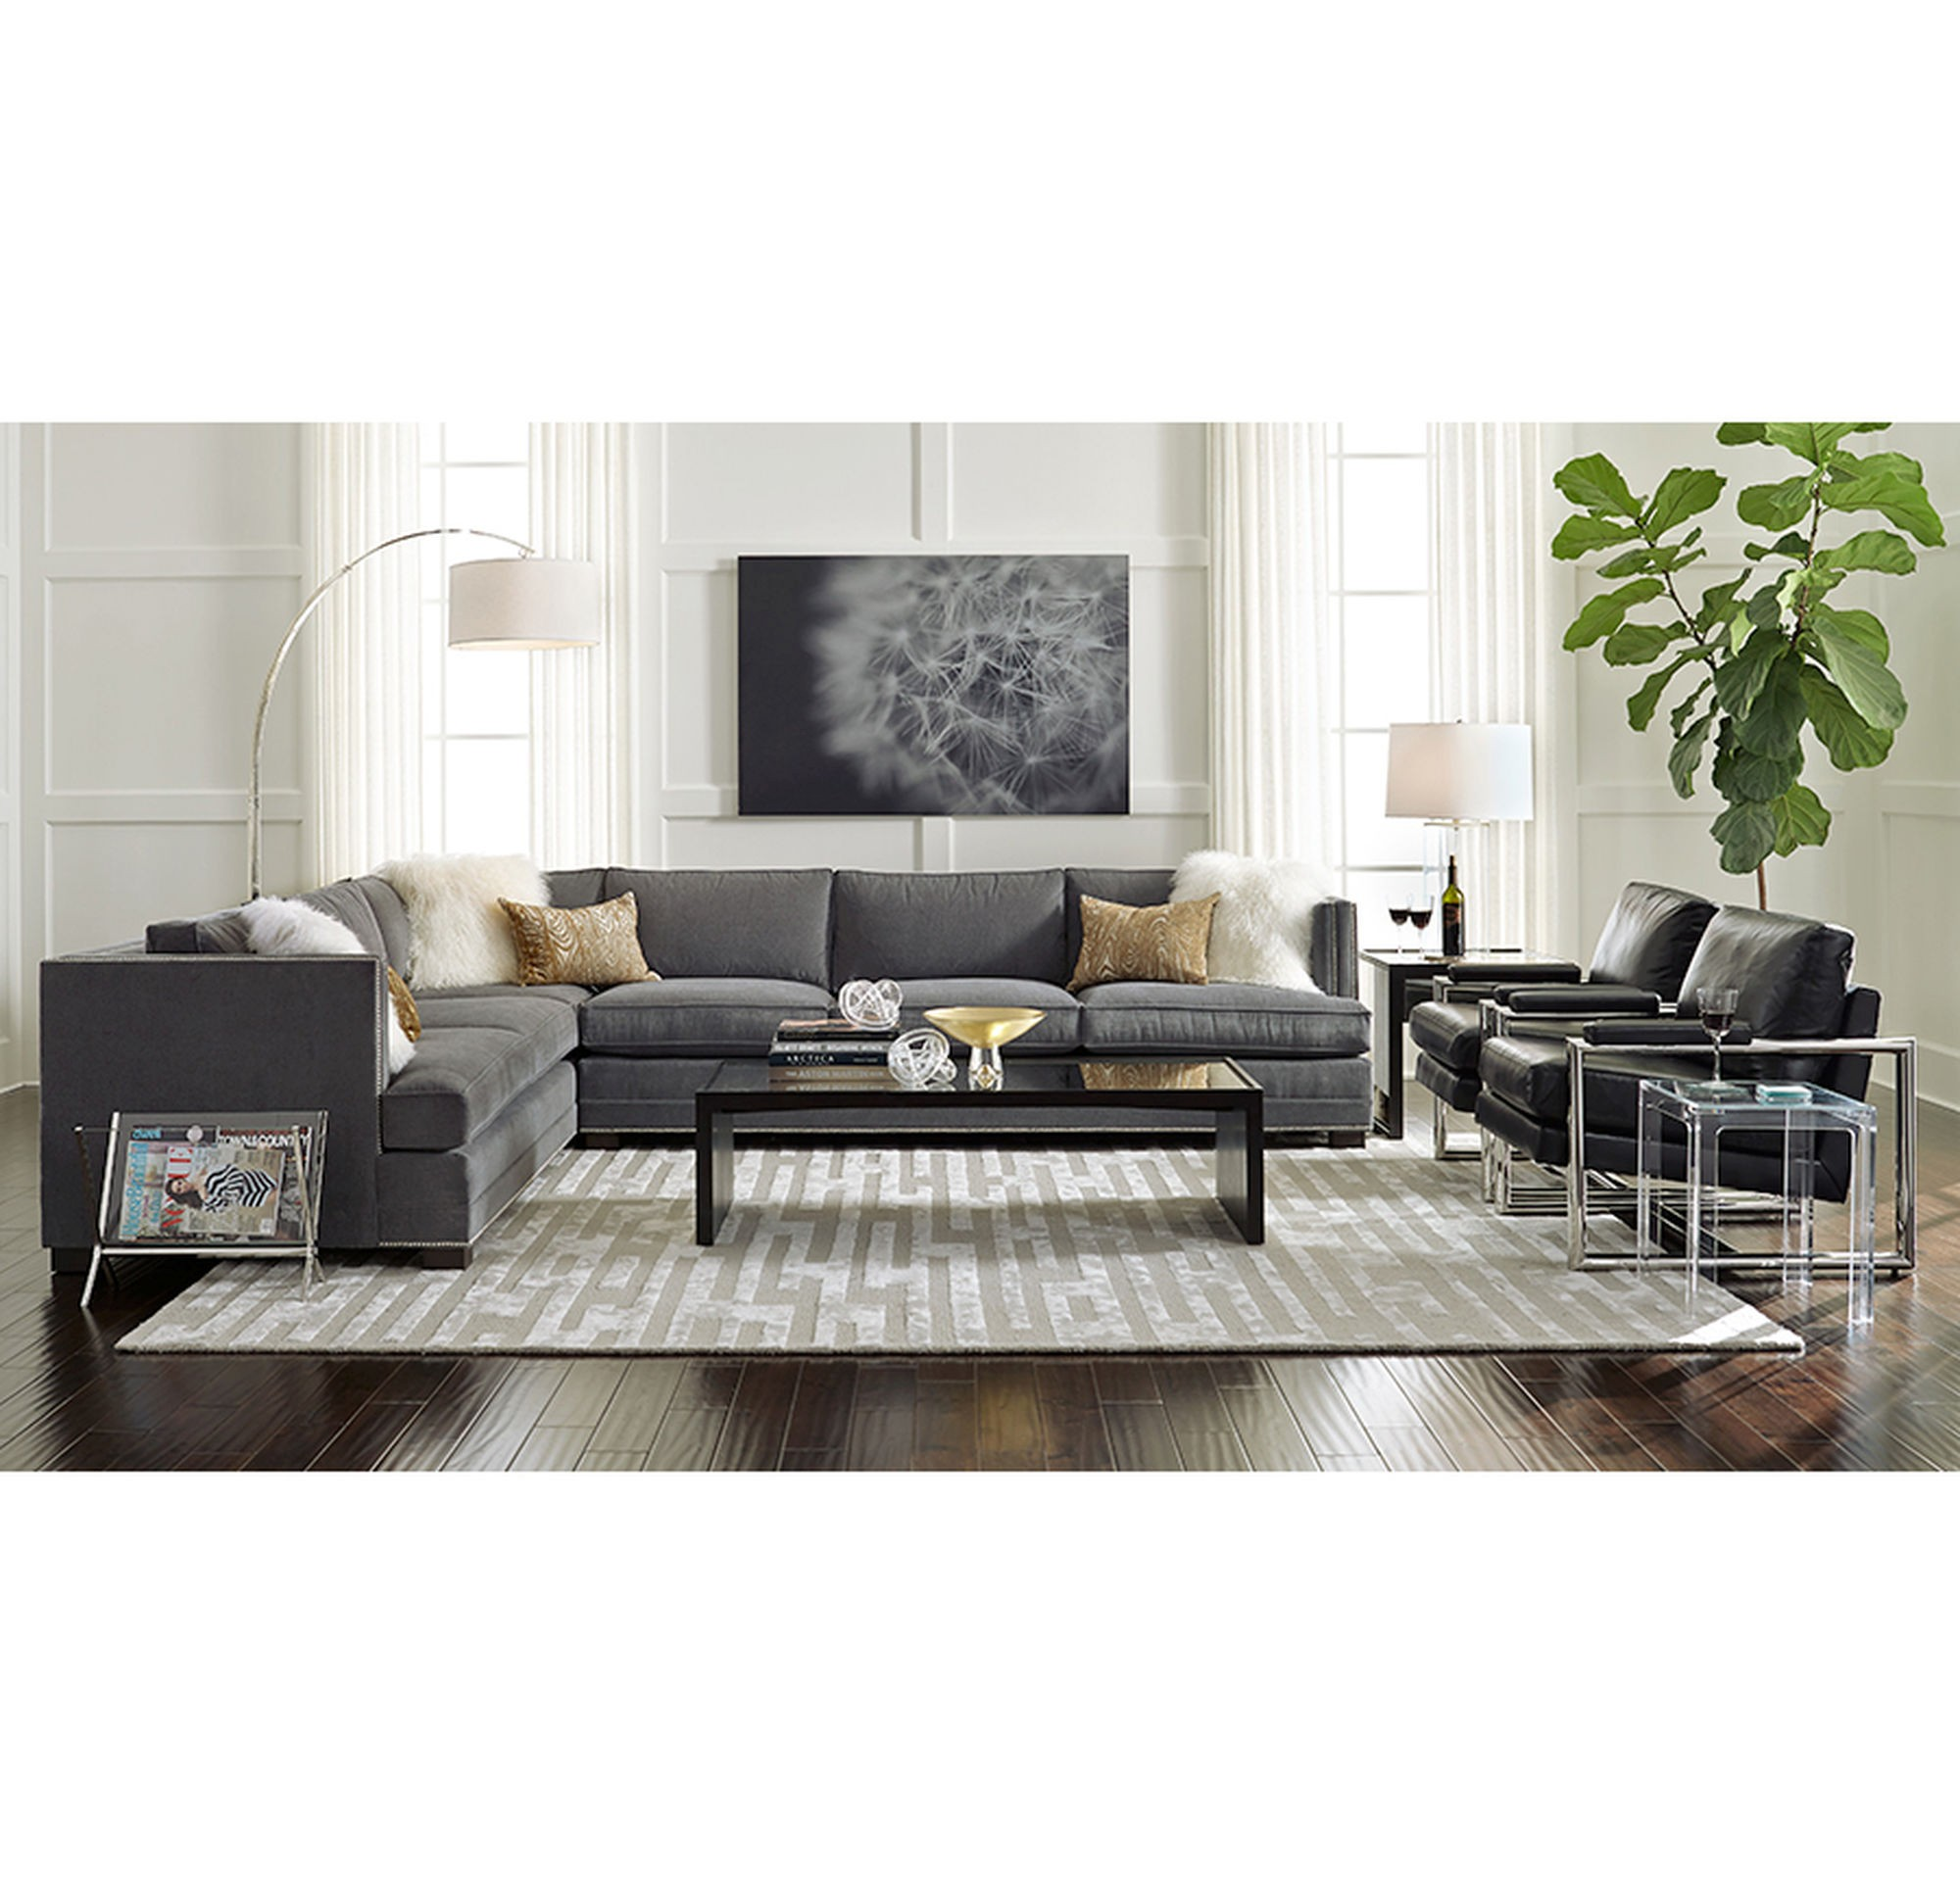 ... Mitchell Gold Sofa Reviews Superb Sofas Amazing Mitchell Gold And Bob  Williams Sofa Bobs Furniture Concept